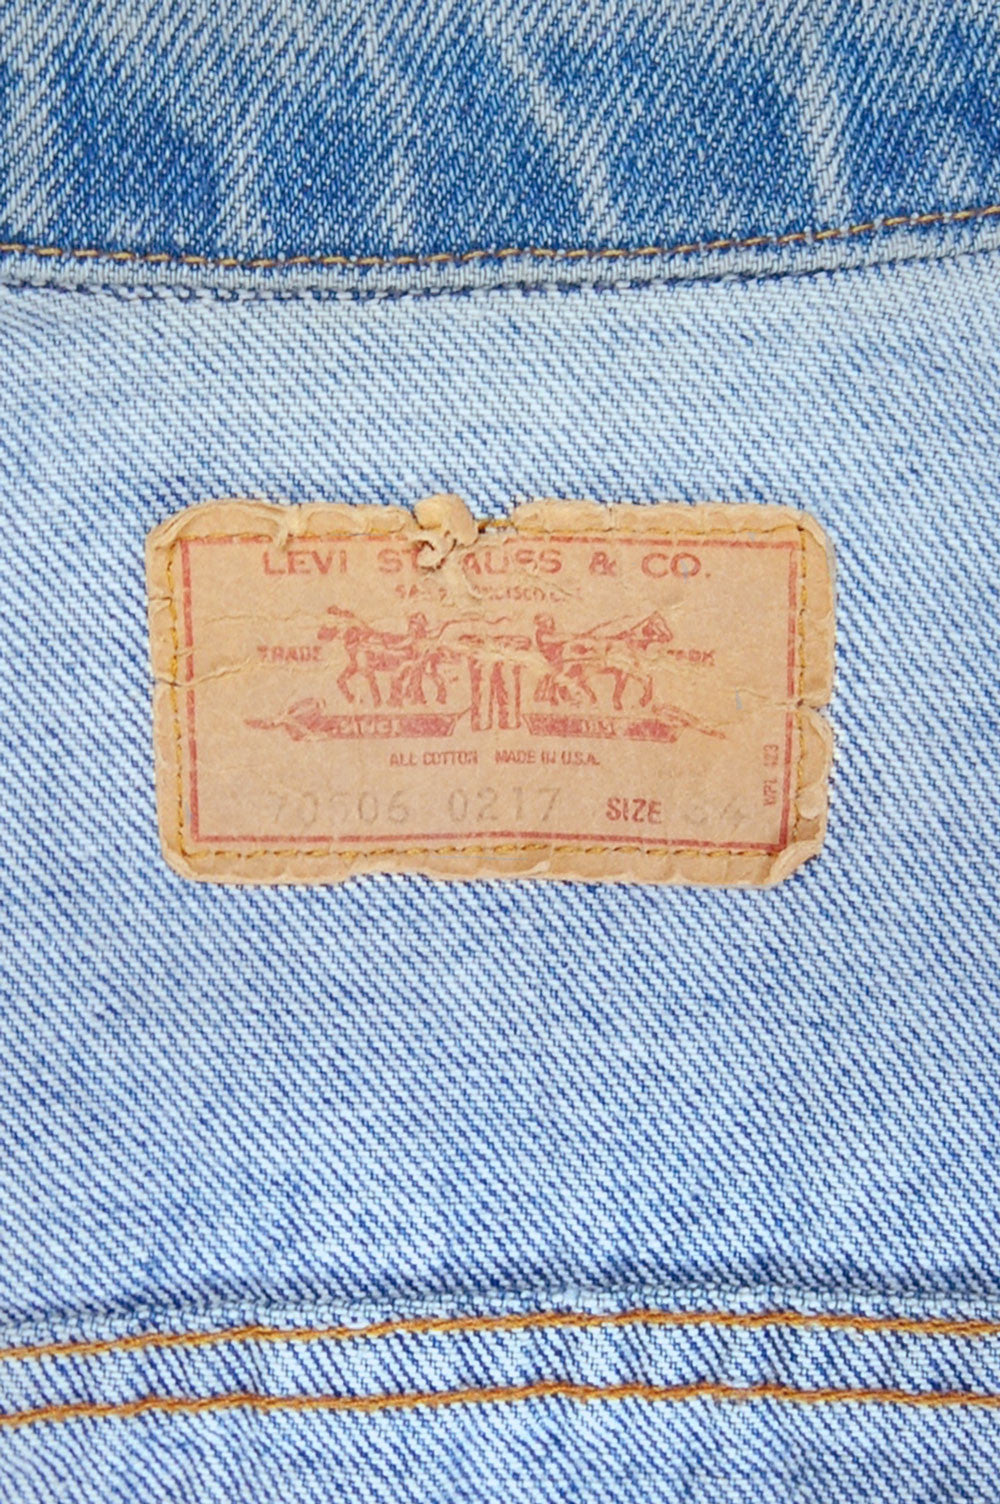 Vintage Levi's 4-Pocket USA Chain-Stitched Sparrow Artwork Trucker Denim Jacket